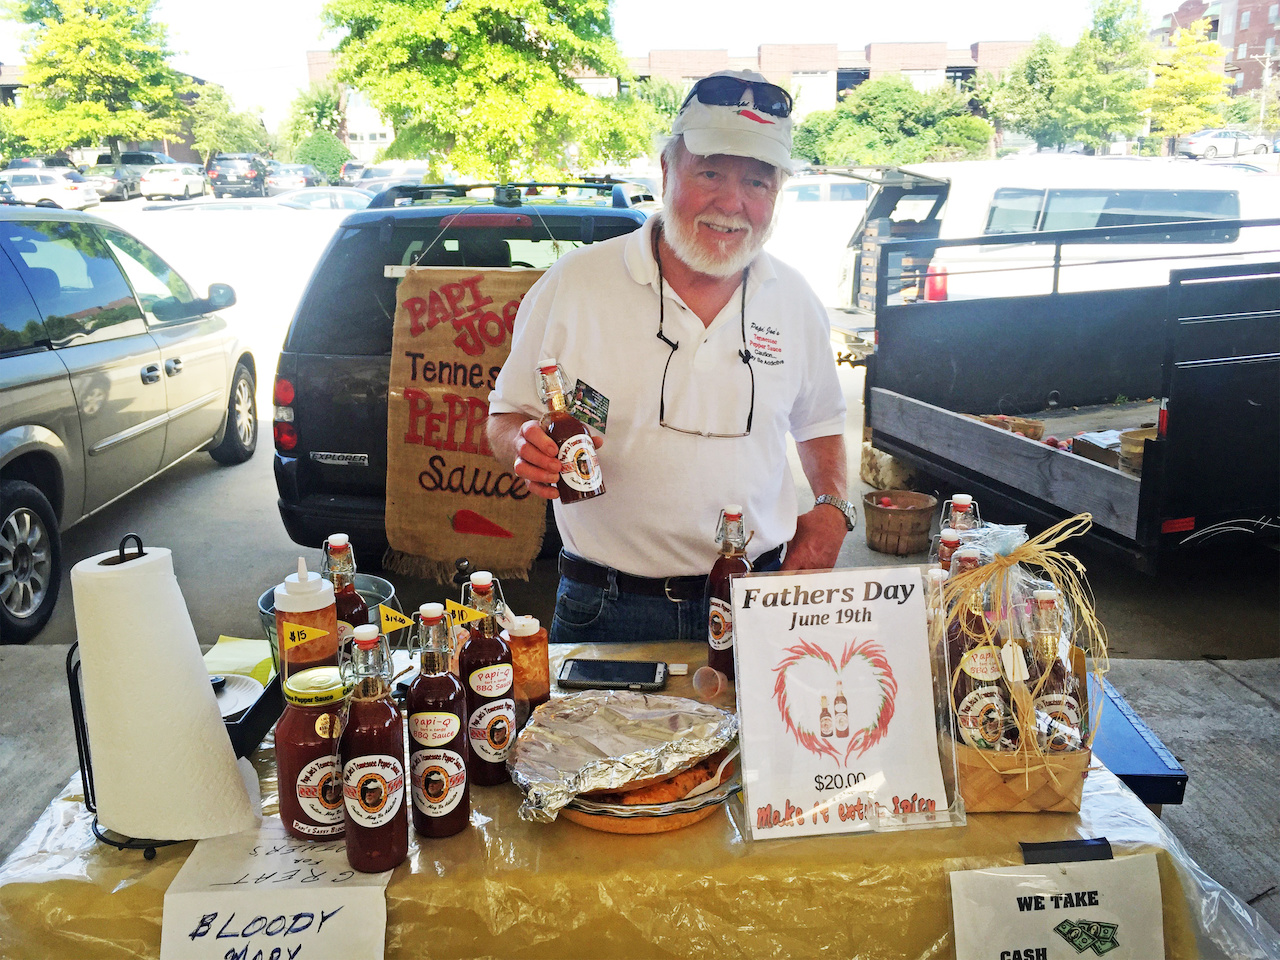 Papi Joe shows off his delicious pepper sauce, $11.